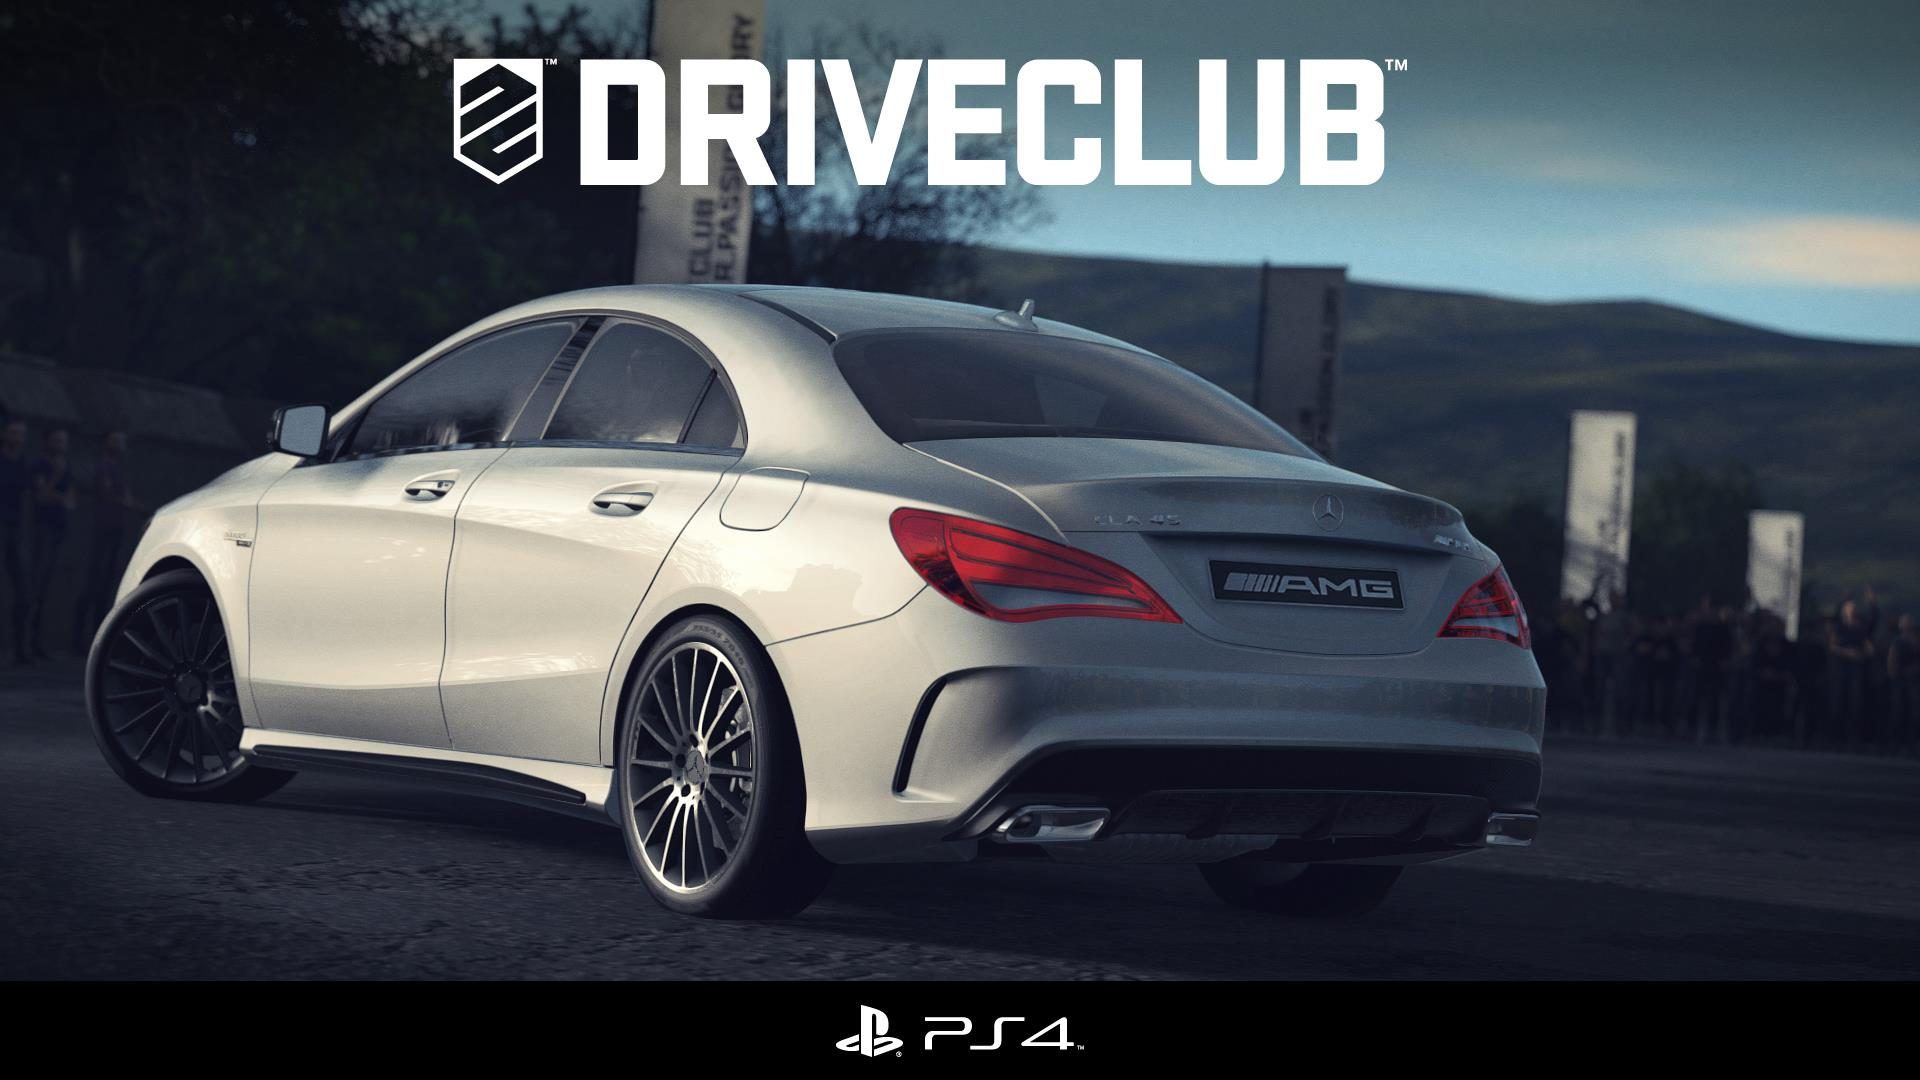 DRIVECLUB delayed, Contrast takes spot in PS4 Launch